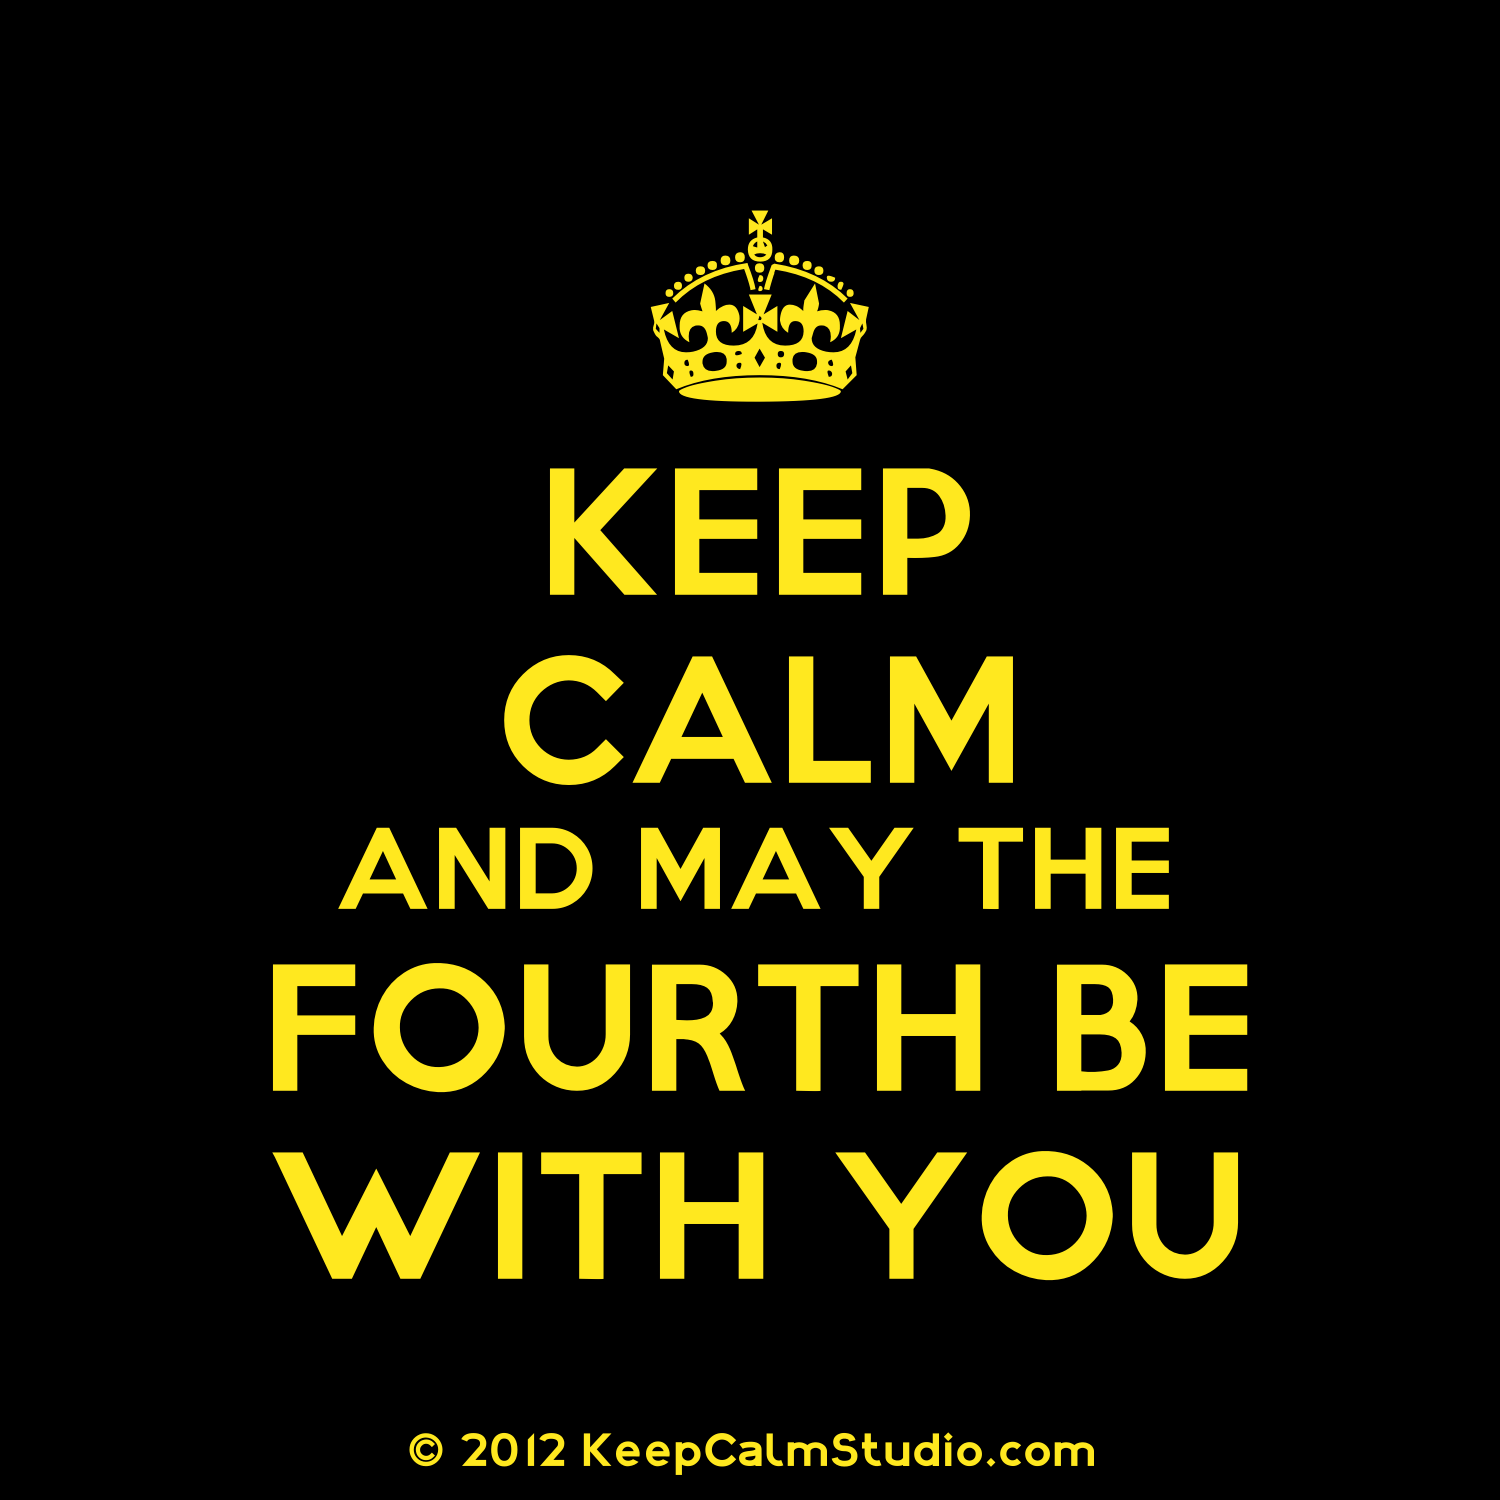 keep calm and may the fourth be with you